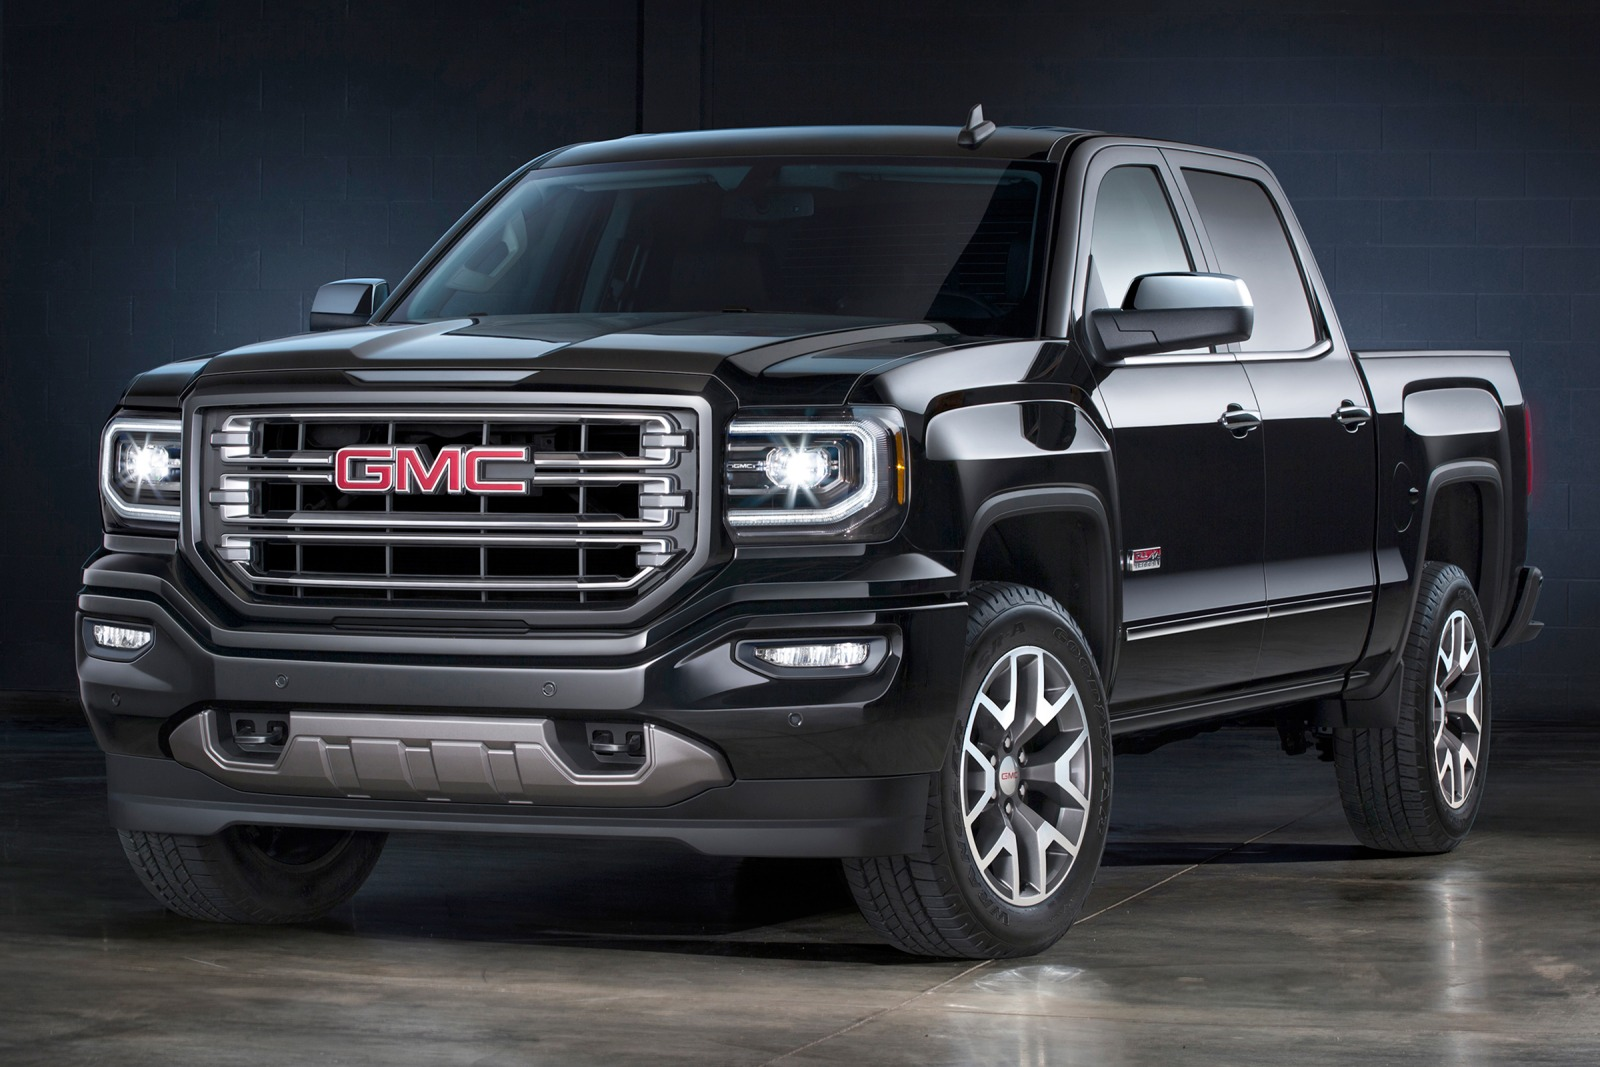 2016 Gmc ton photo - 3